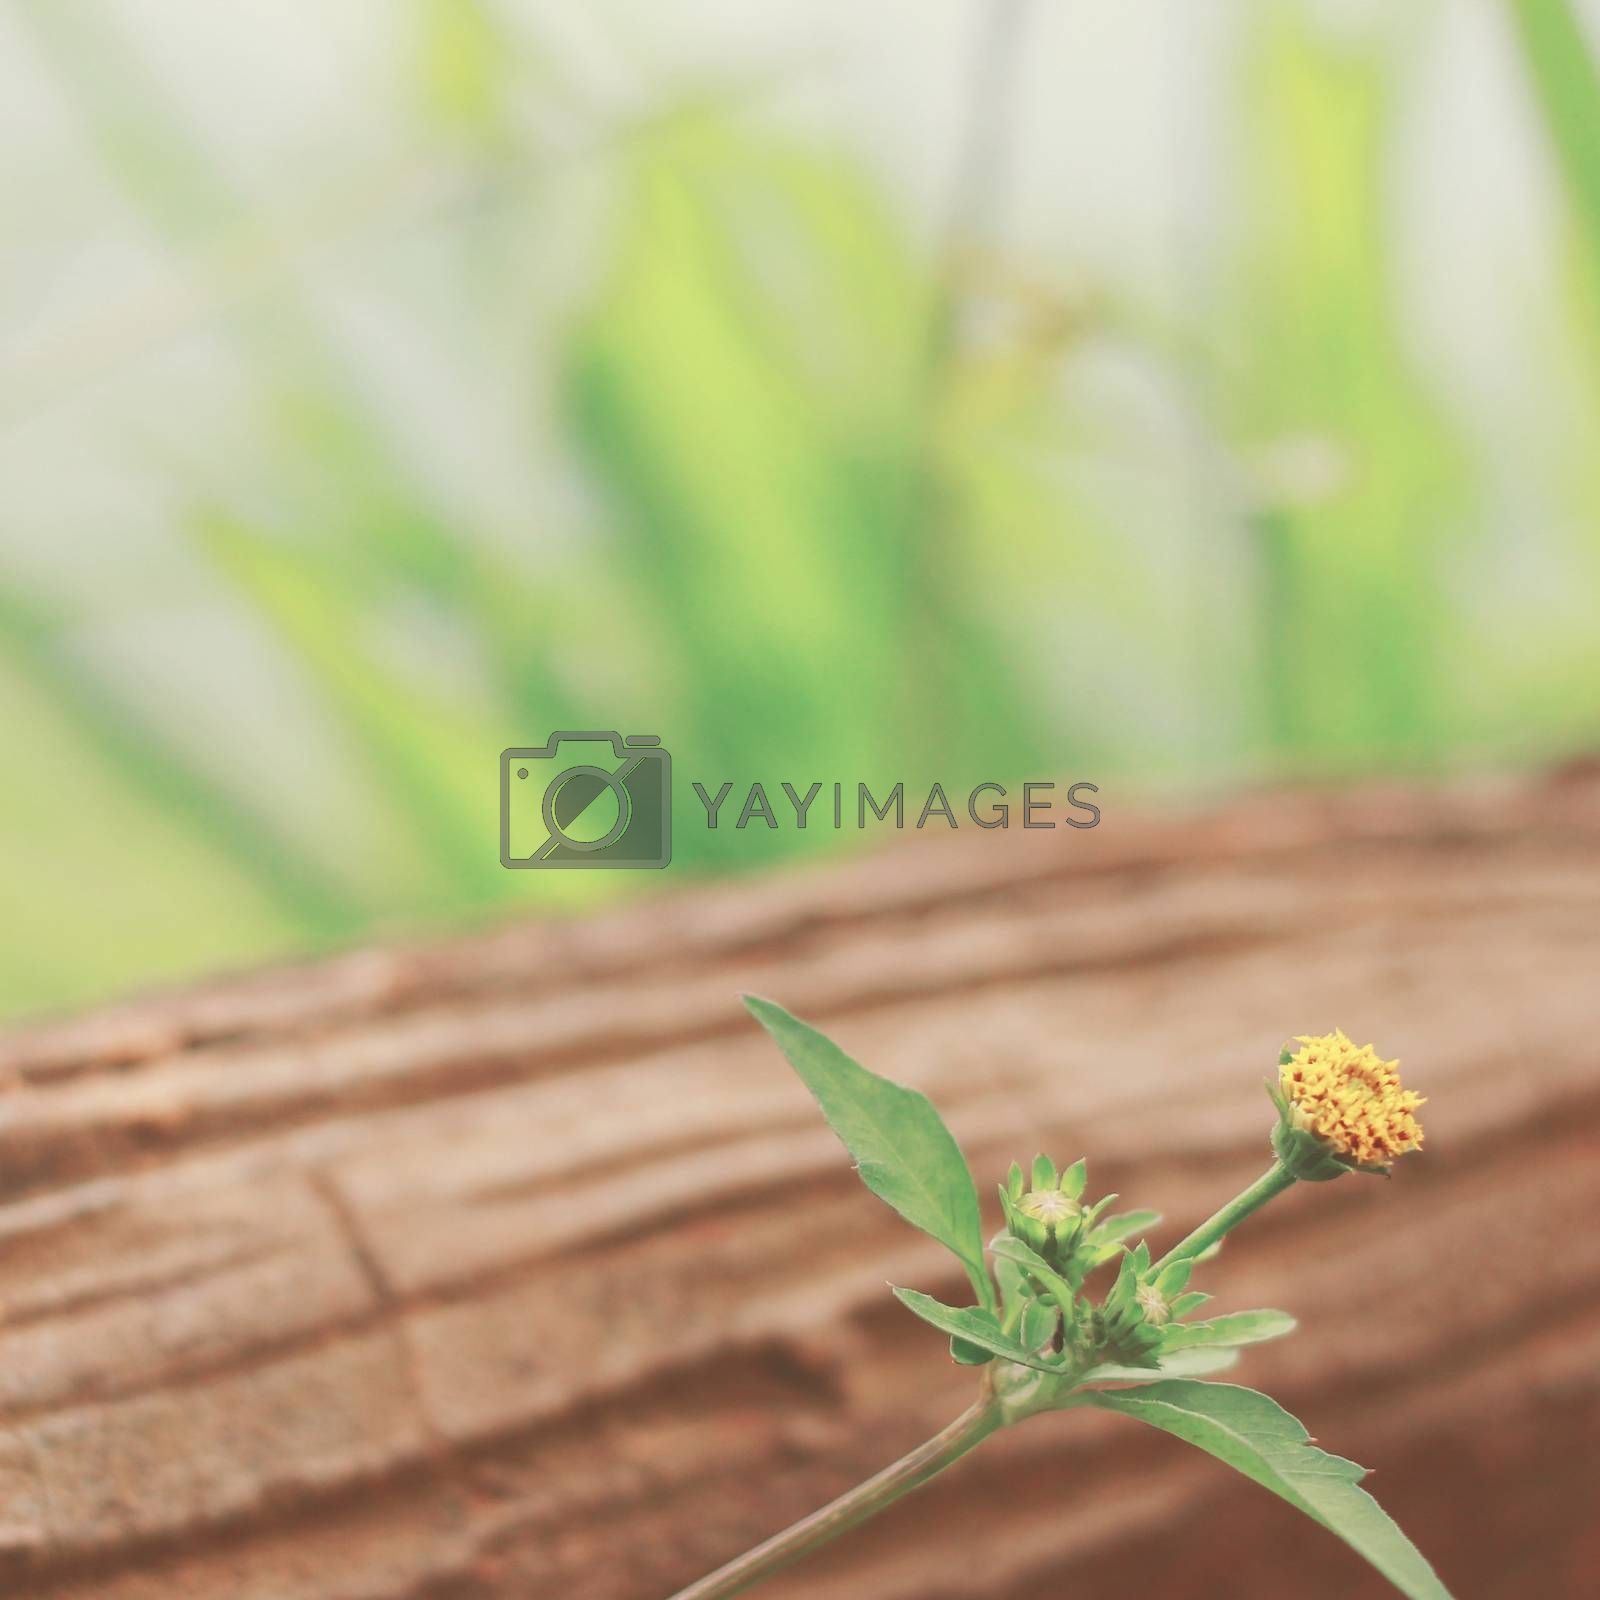 Little yellow flower on wood with retro filter effect